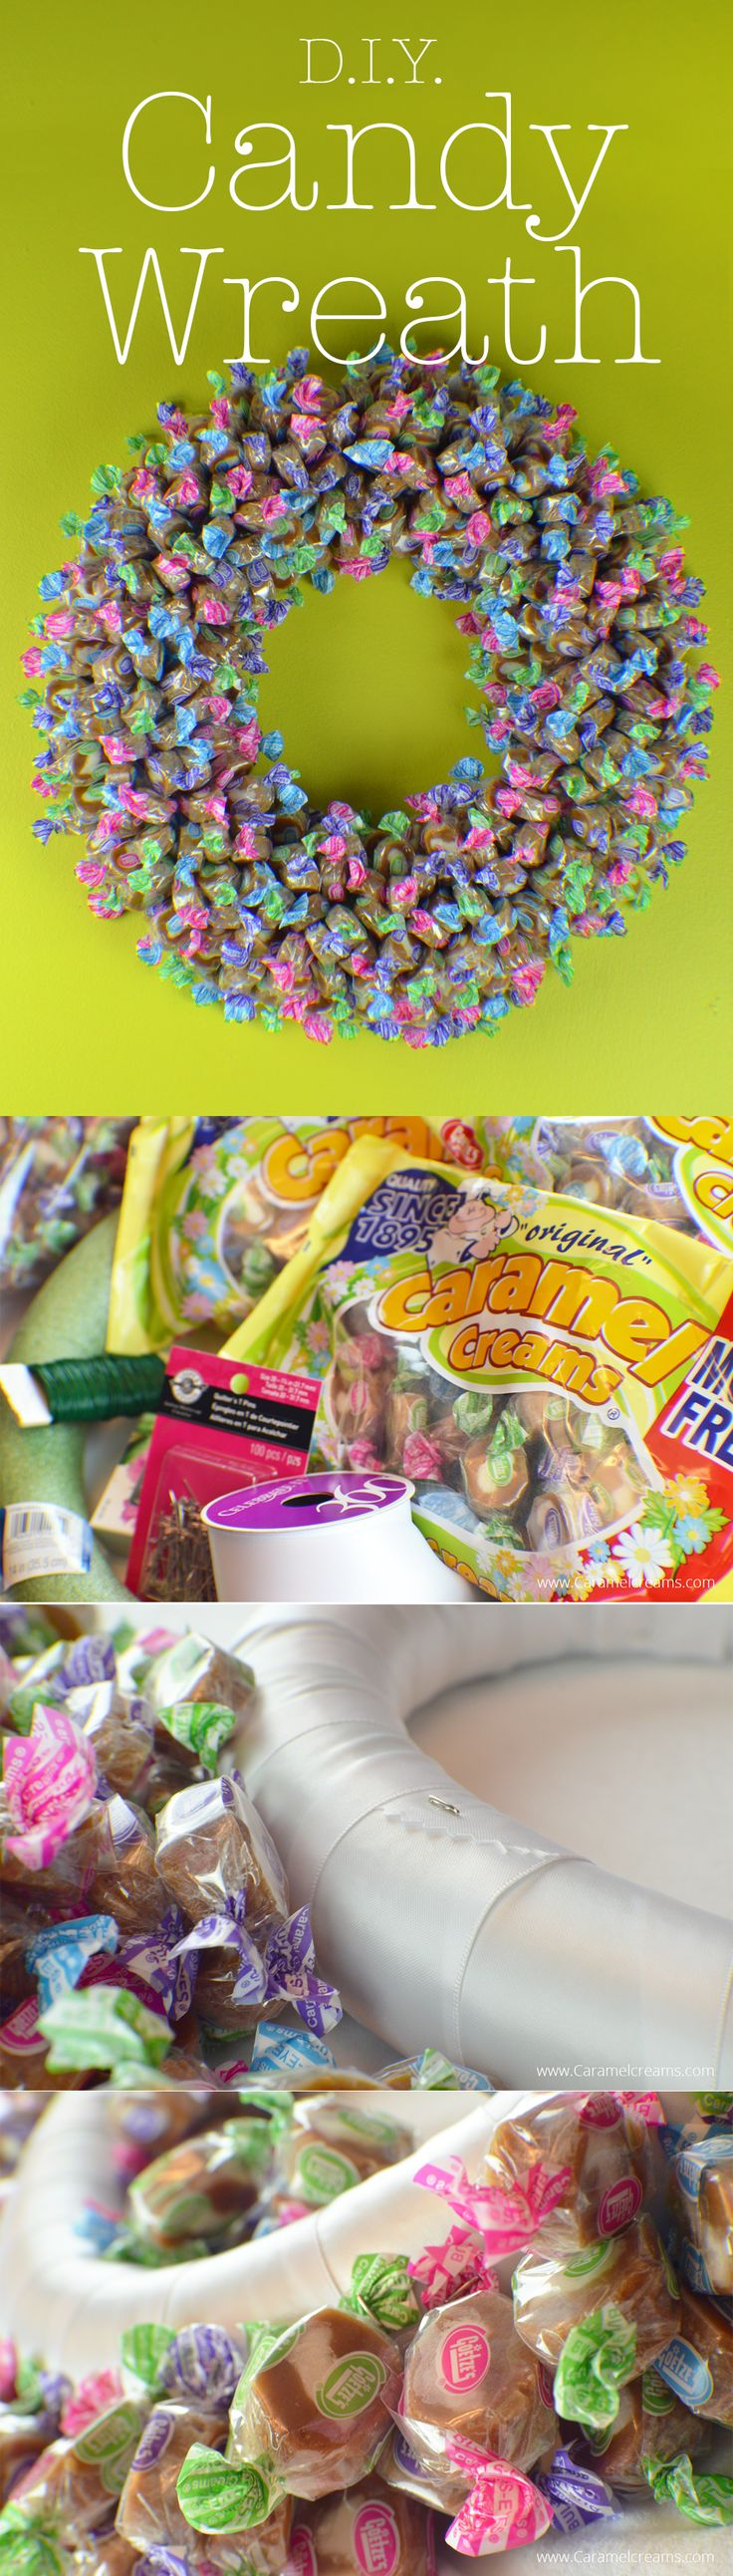 What a fun idea! Make a pink, green, blue and purple candy wreath with Goetze's Spring Caramel Creams®! This beautiful DIY caramel candy wreath is super fun and easy to make. Just pin Caramel Creams® to a wreath base and hang! Your candy wreath will bloom with every caramel you eat!